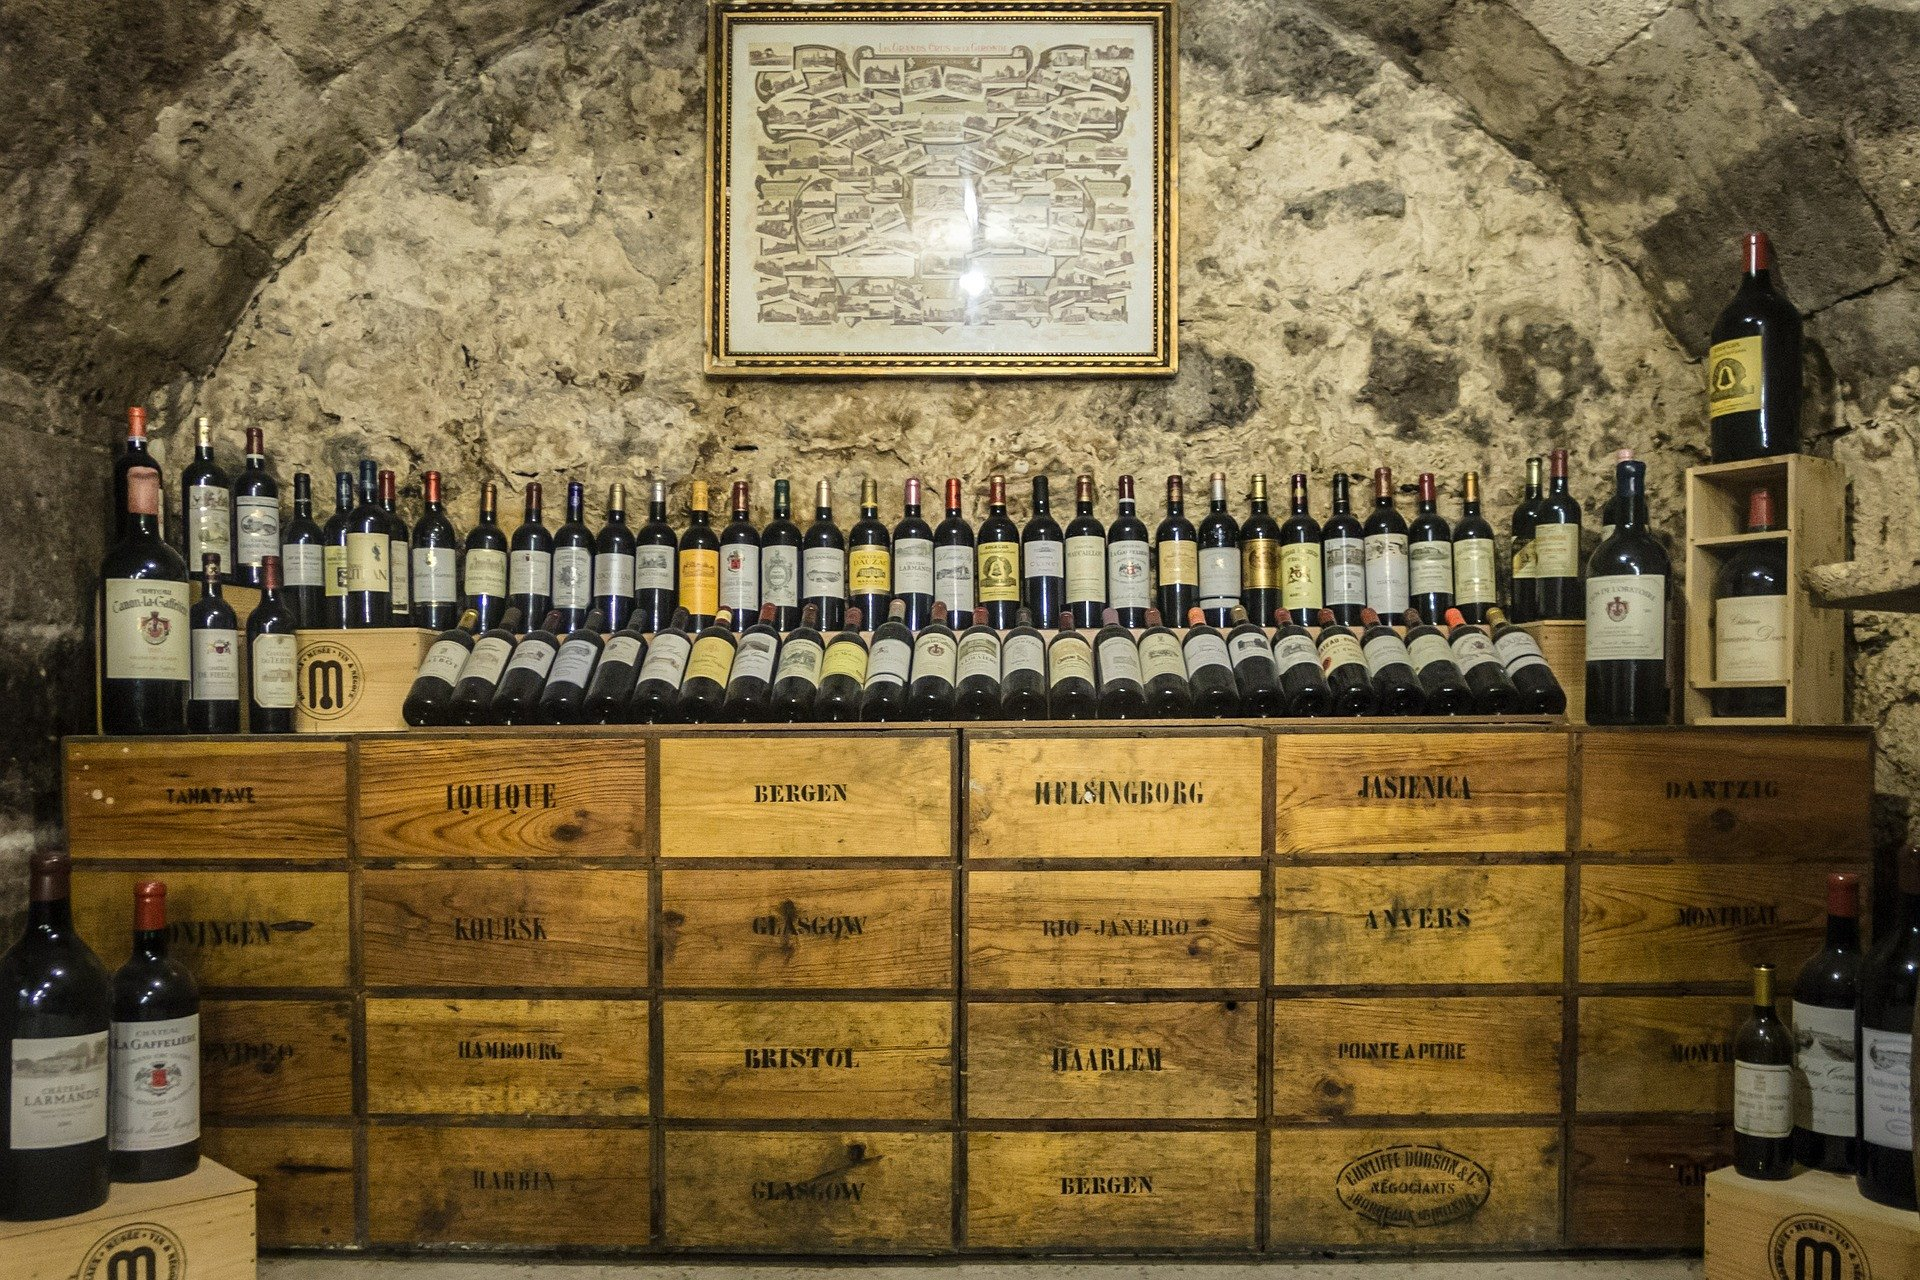 Cellar with plenty Bordeaux red wine bottles